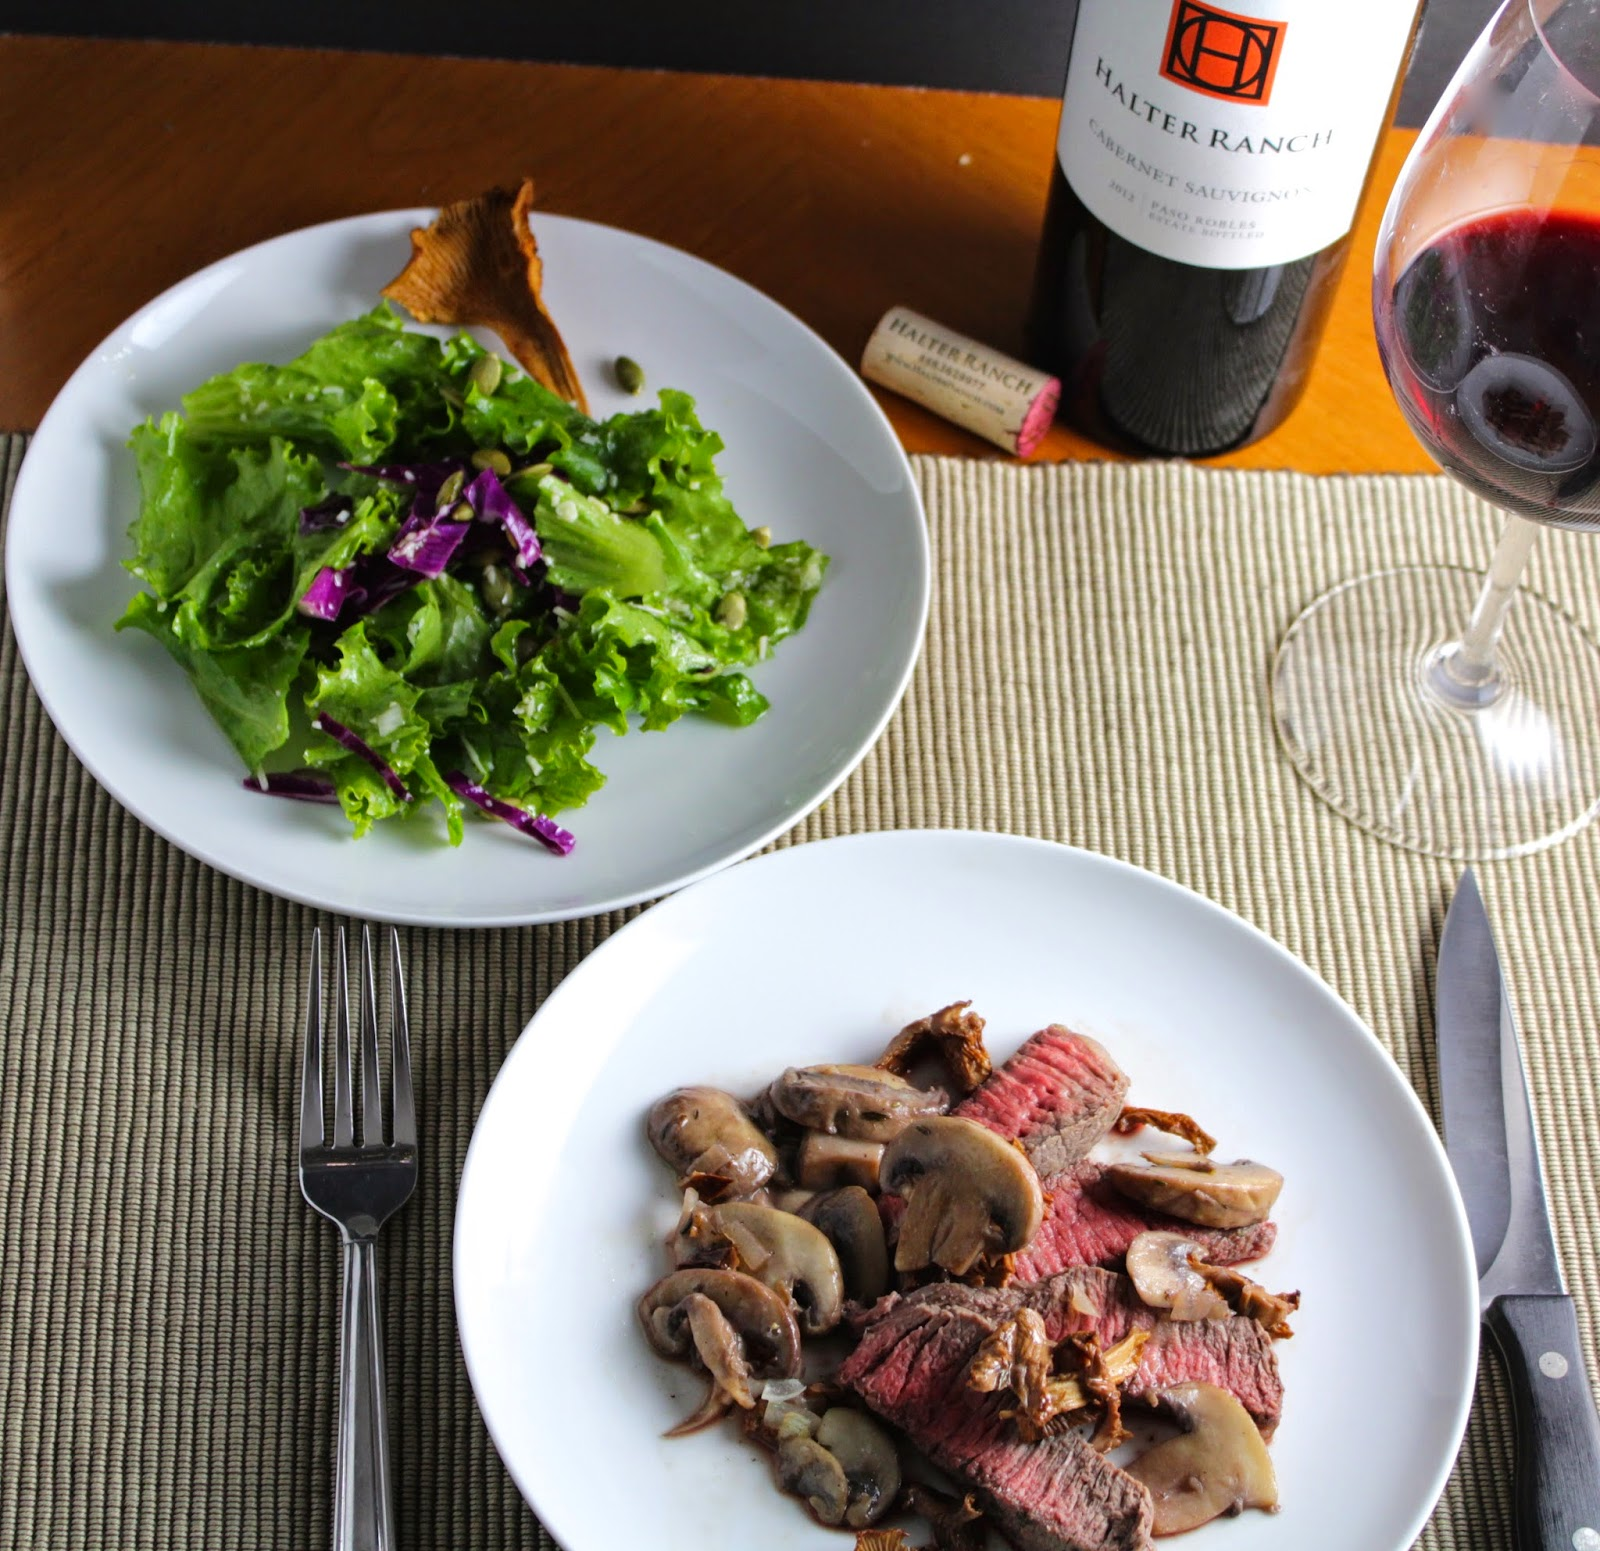 Roasted Sirloin Steak with Chanterelle Mushrooms and a Halter Ranch Cabernet Sauvignon. Cooking Chat recipe.